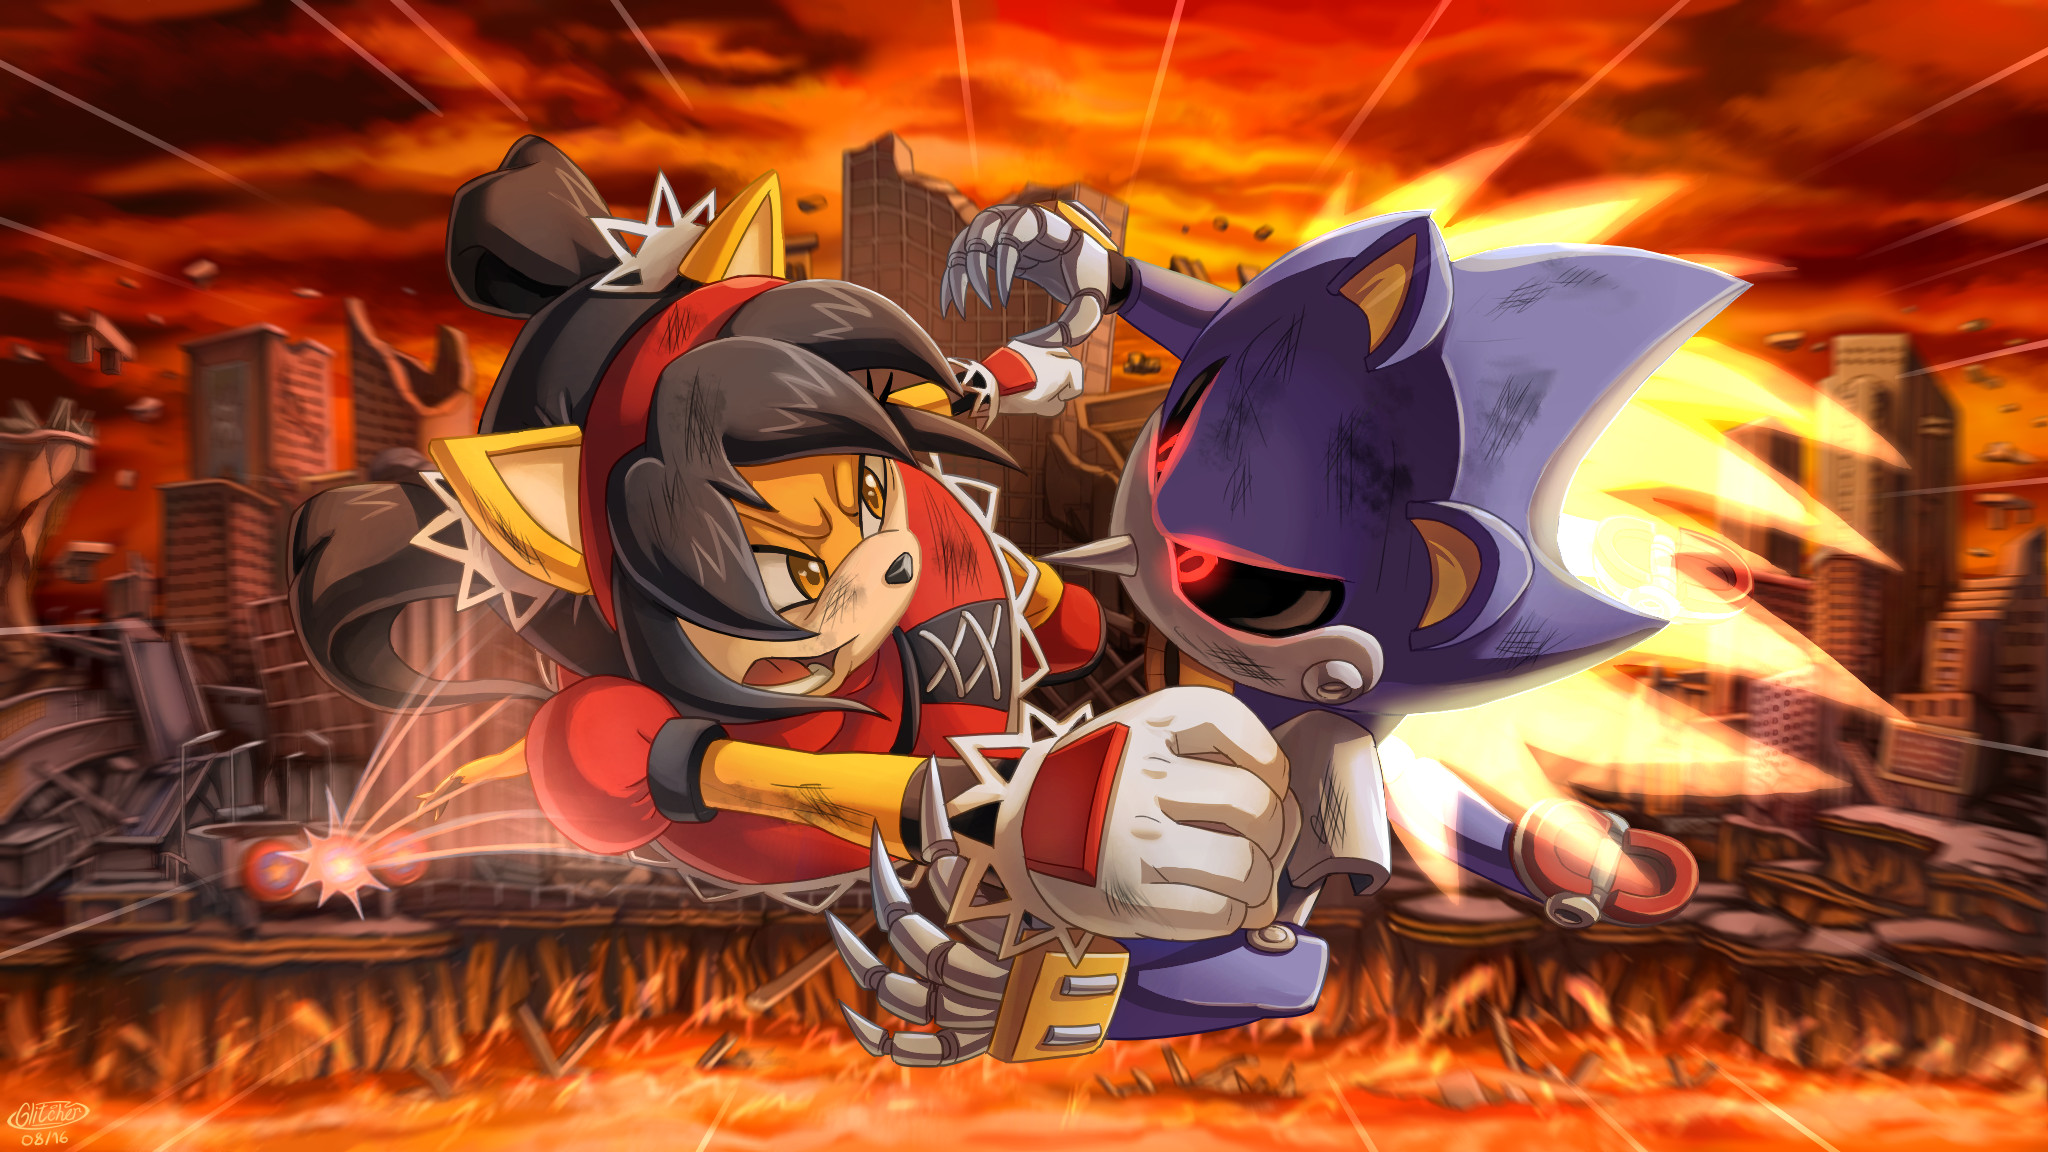 Cool wallpaper of Metal Sonic and Honey the Cat